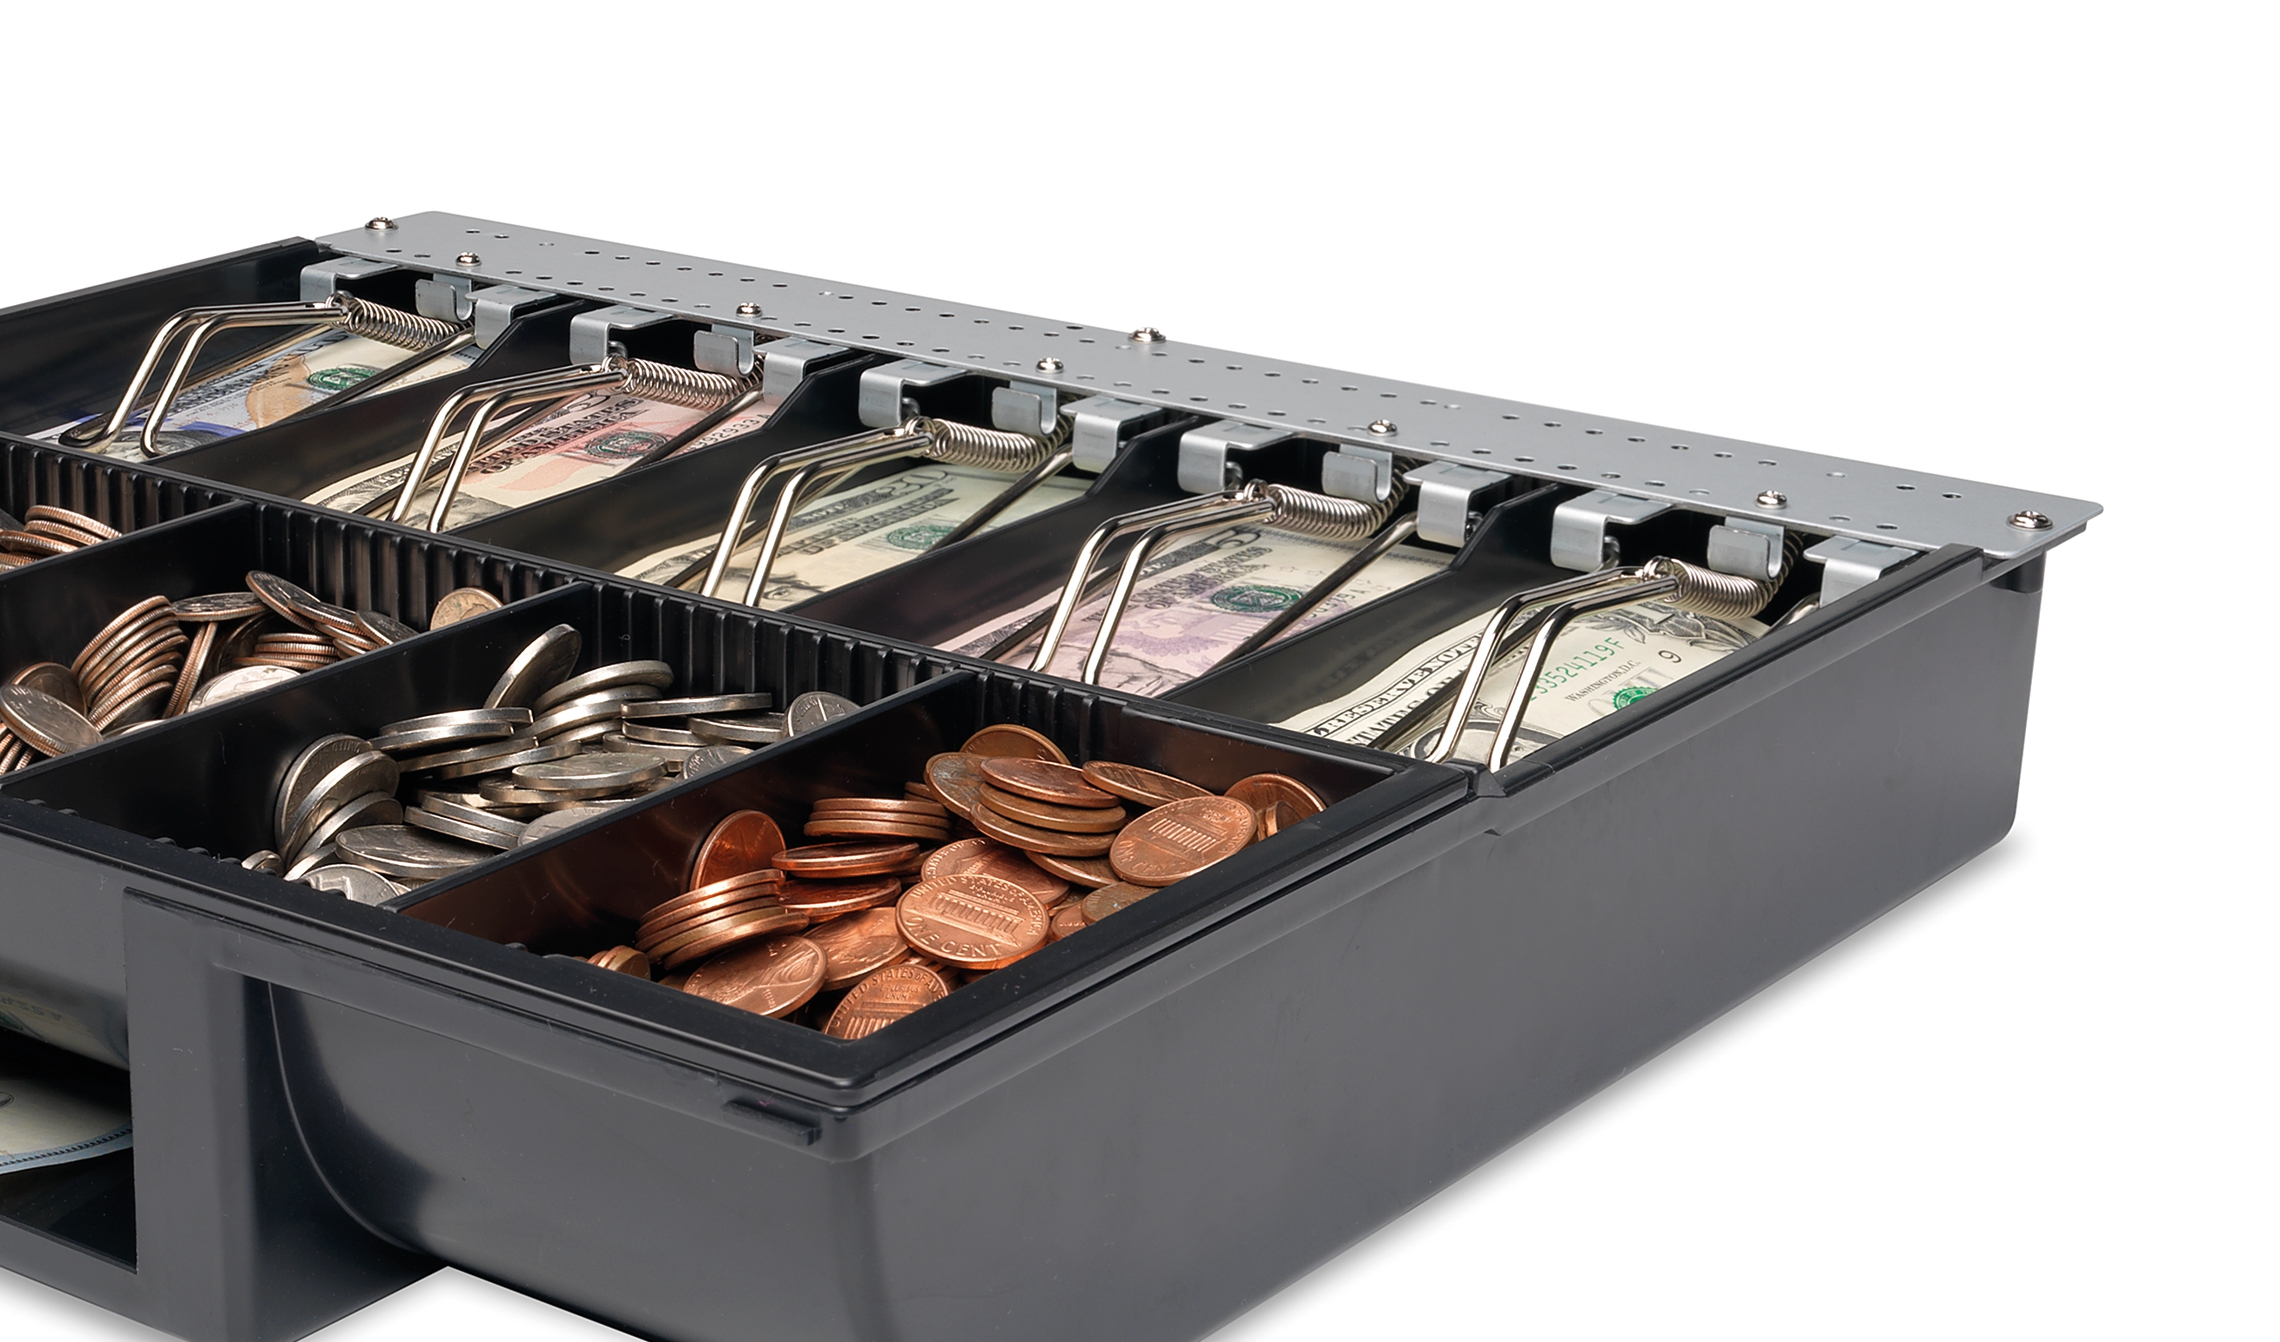 co series kami industrial ltd drawers drawer money cash pos classic product